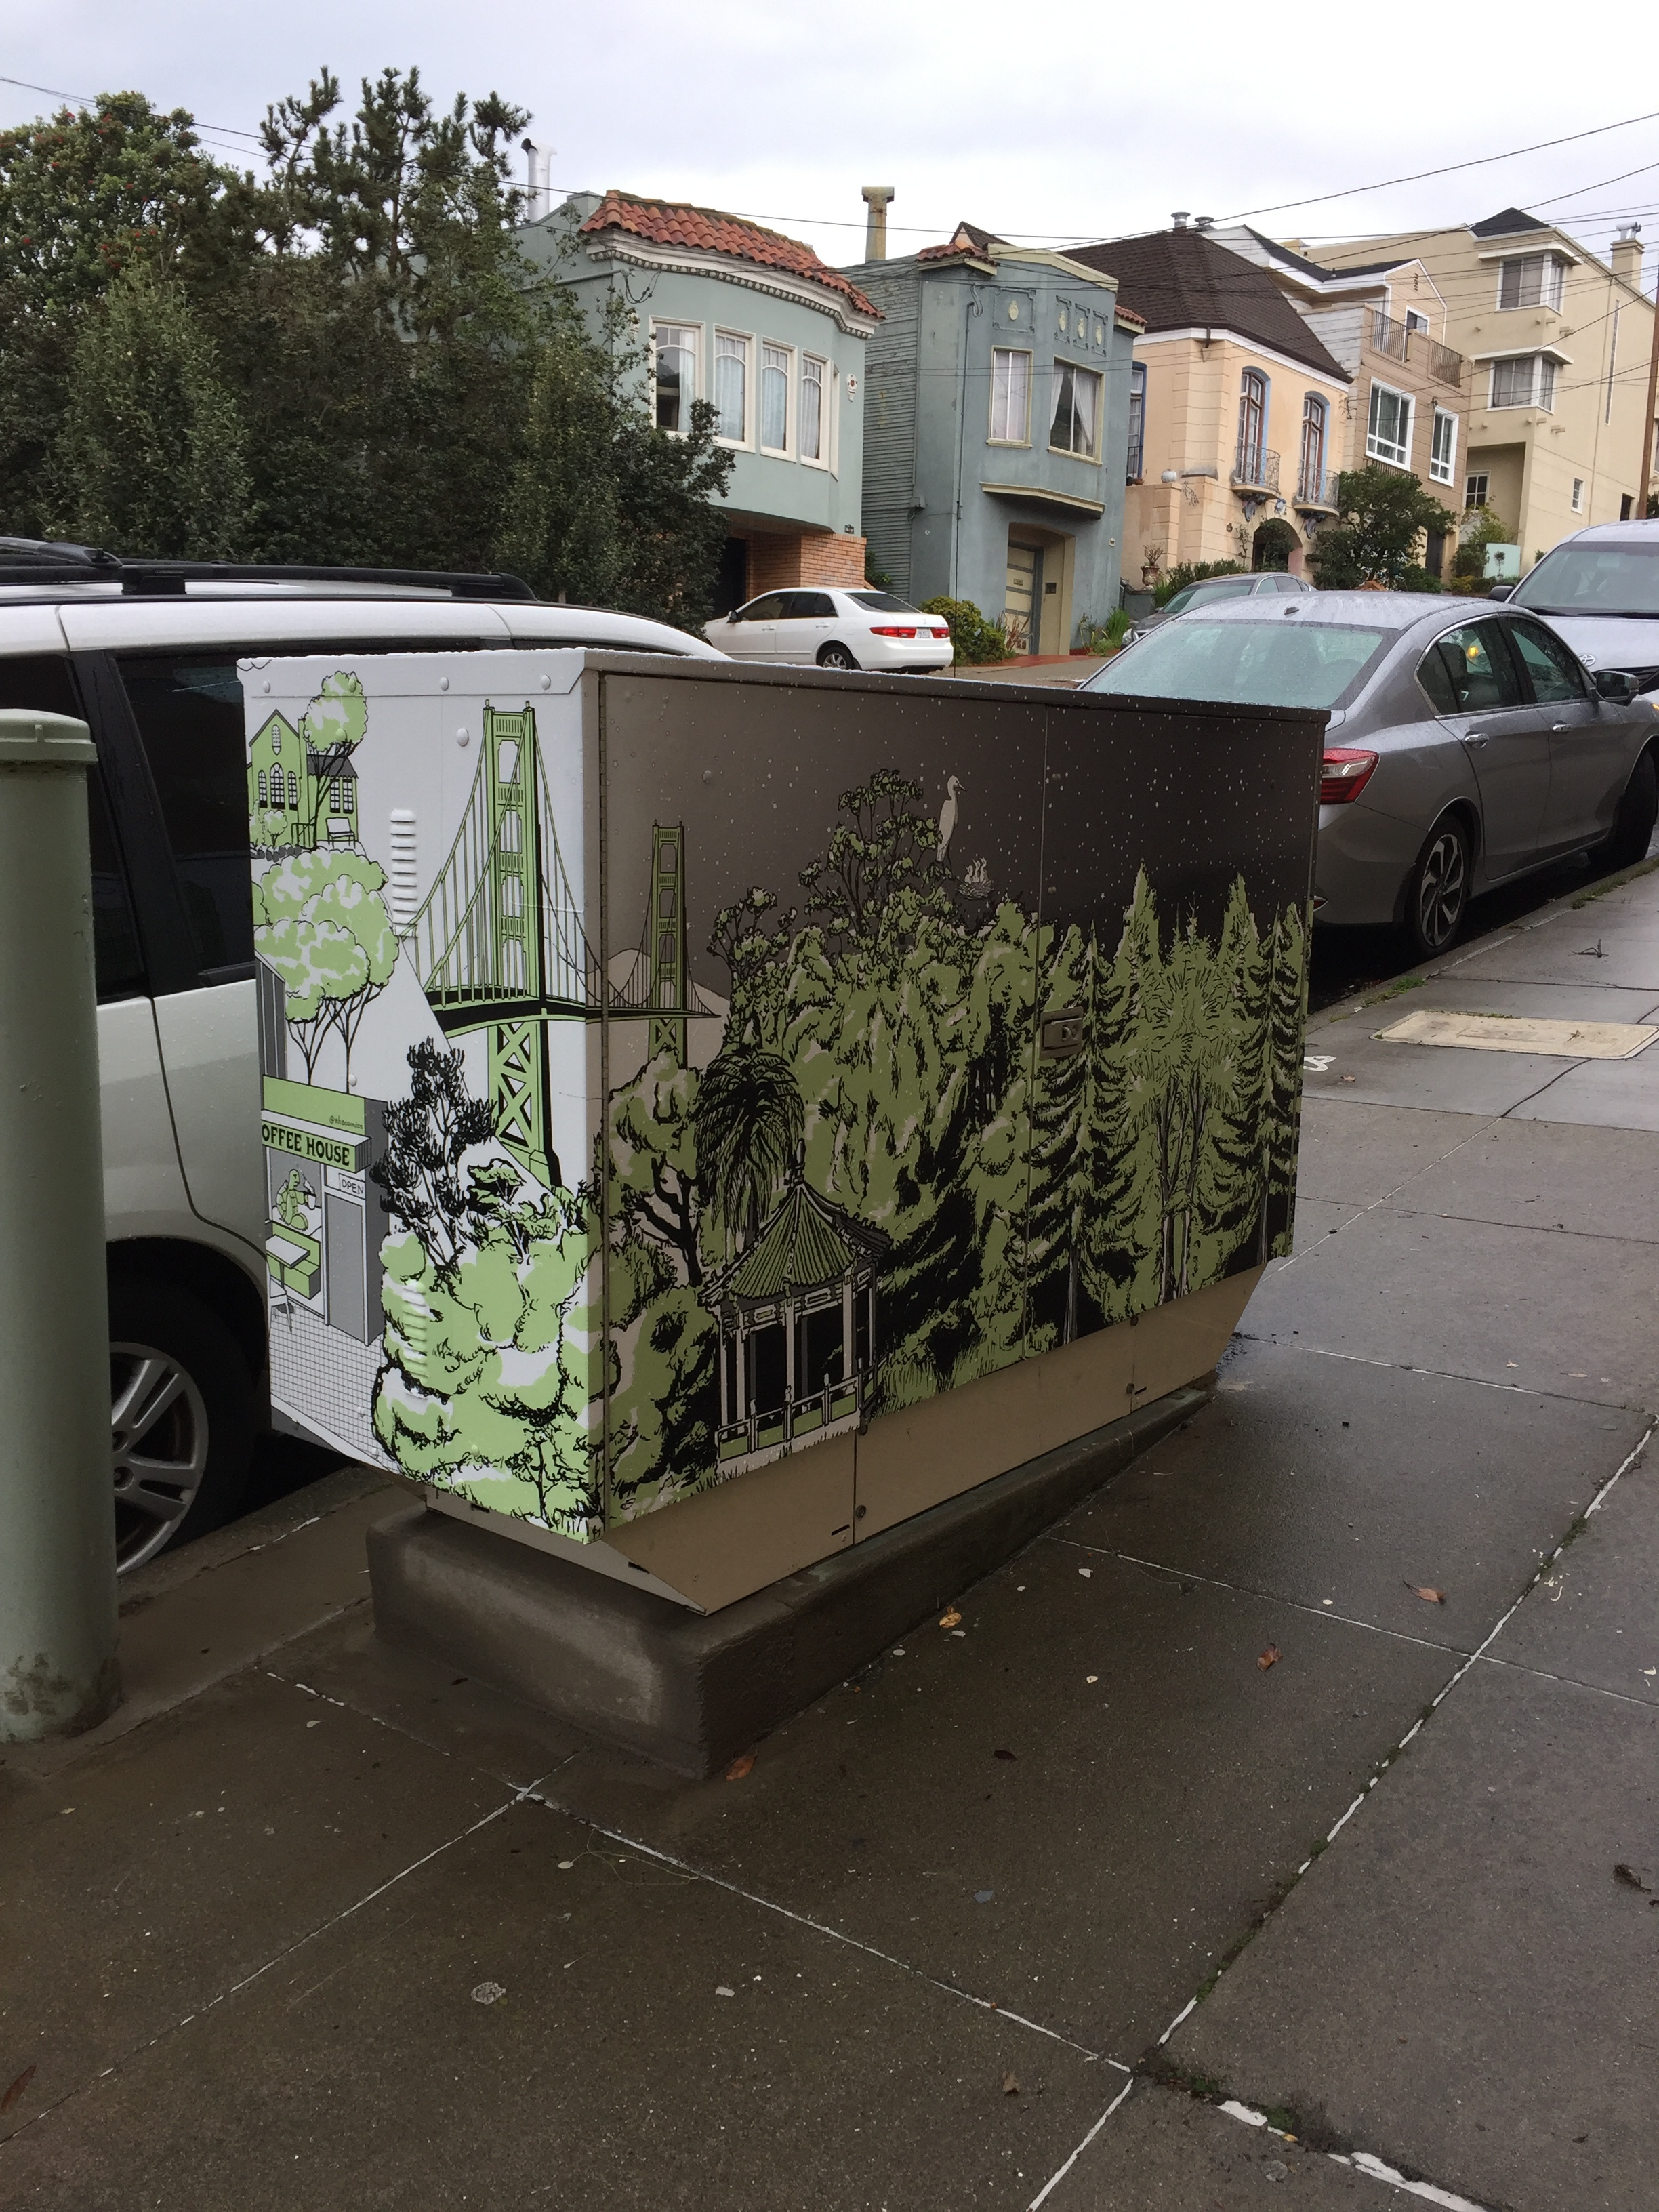 CleanSlateGroup_GraffitiResistant_SanFrancisco,CA_District1_678.46thAve_6.JPG